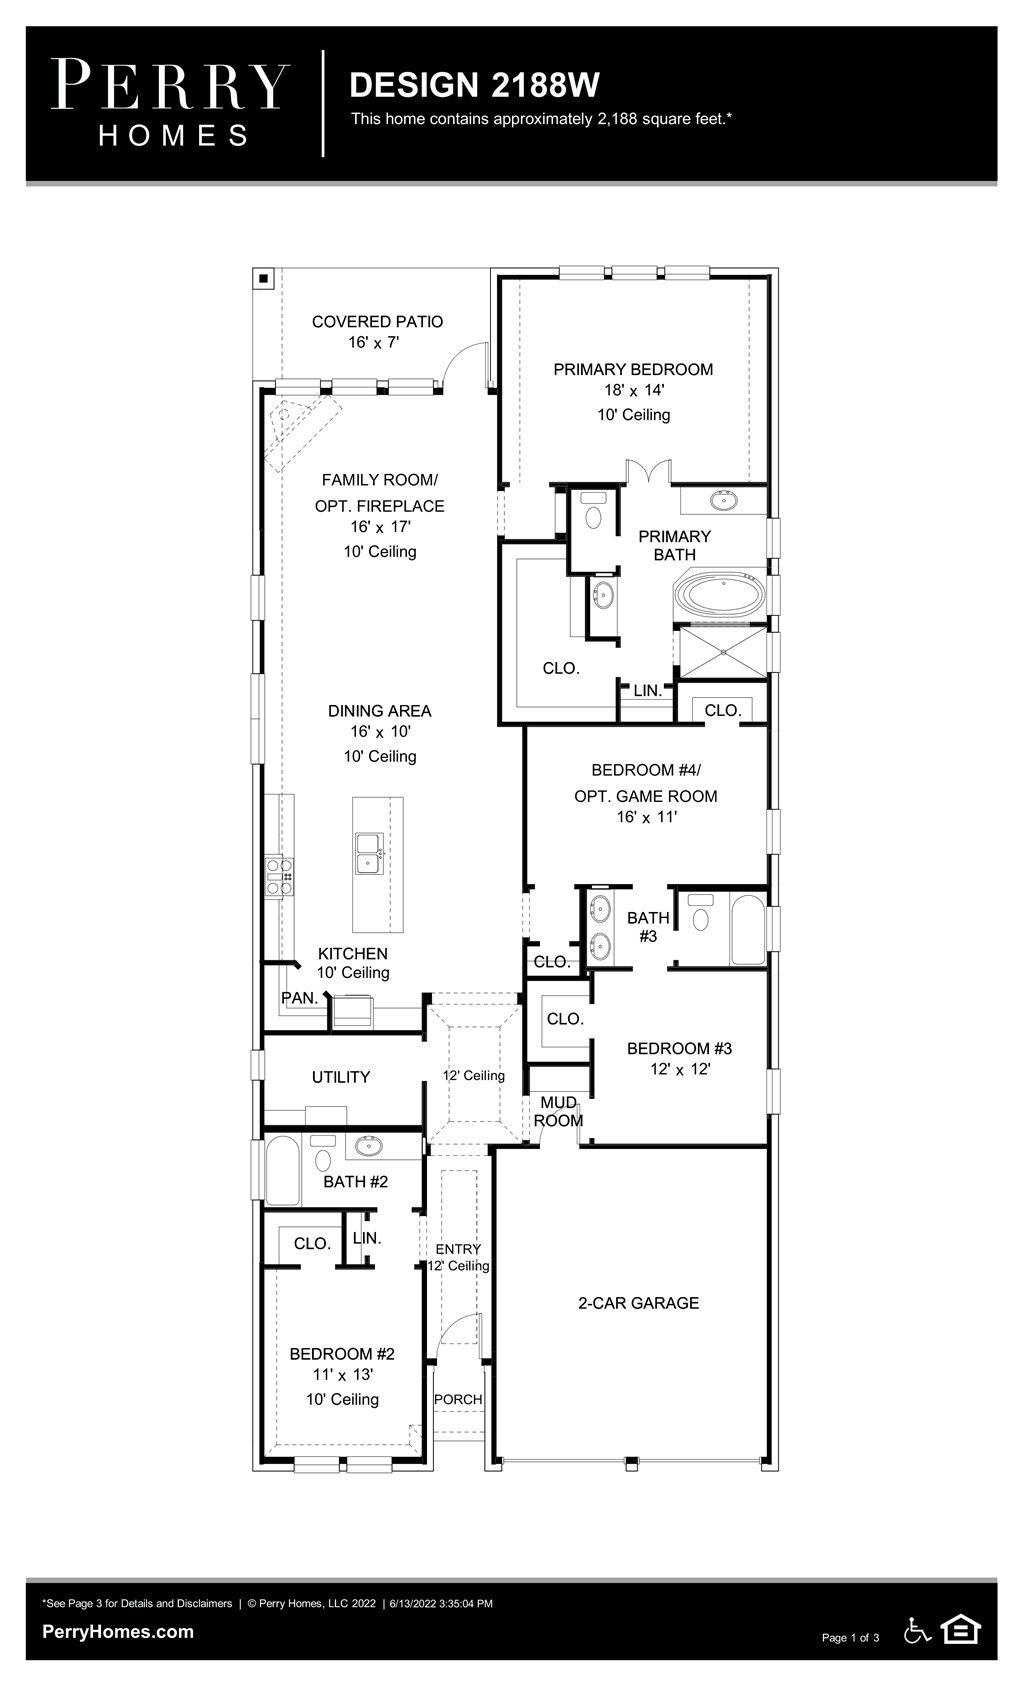 Floor Plan for 2188W